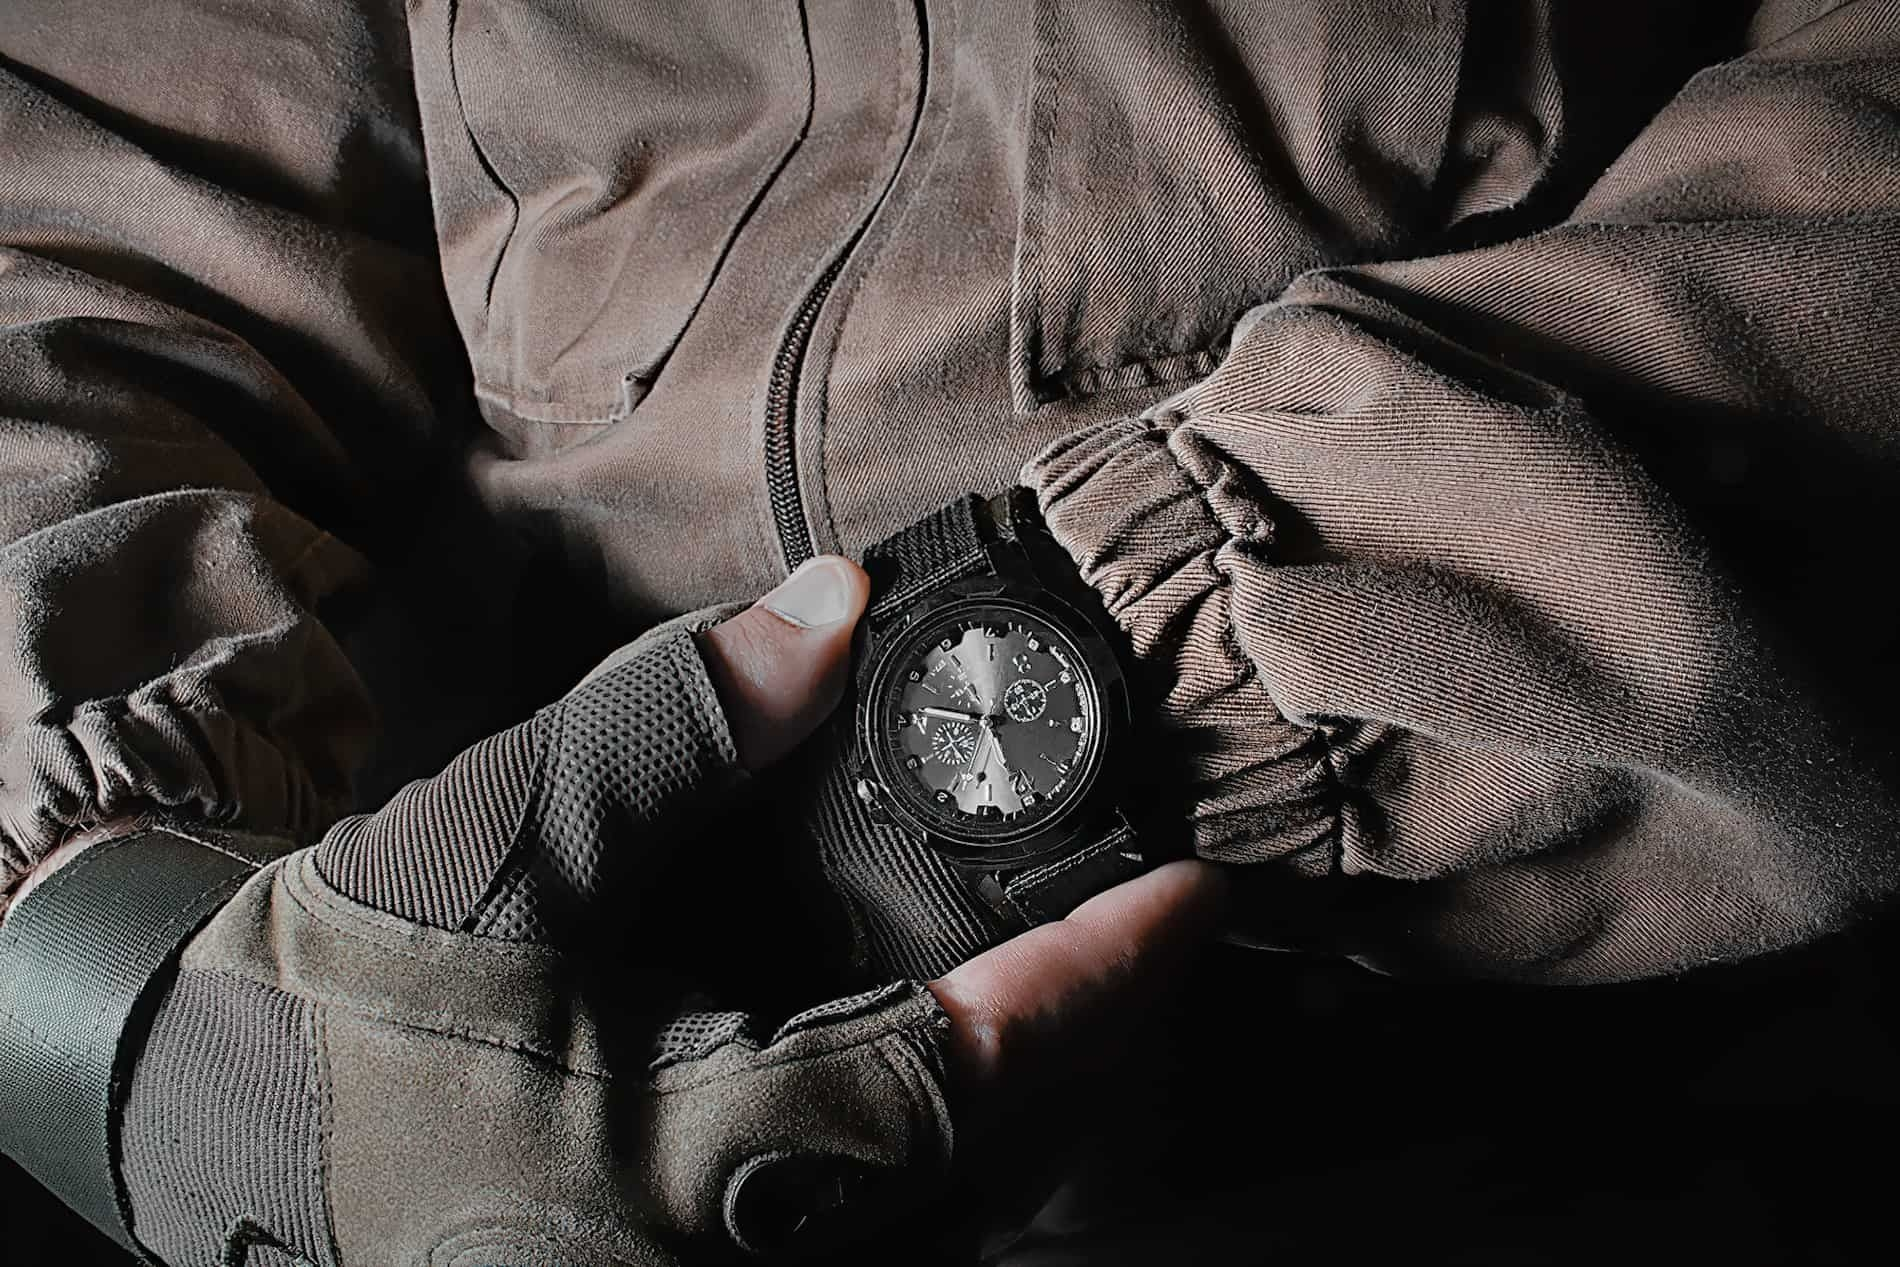 Tactical Watches Buying Guide 2020 – What You Need To Know